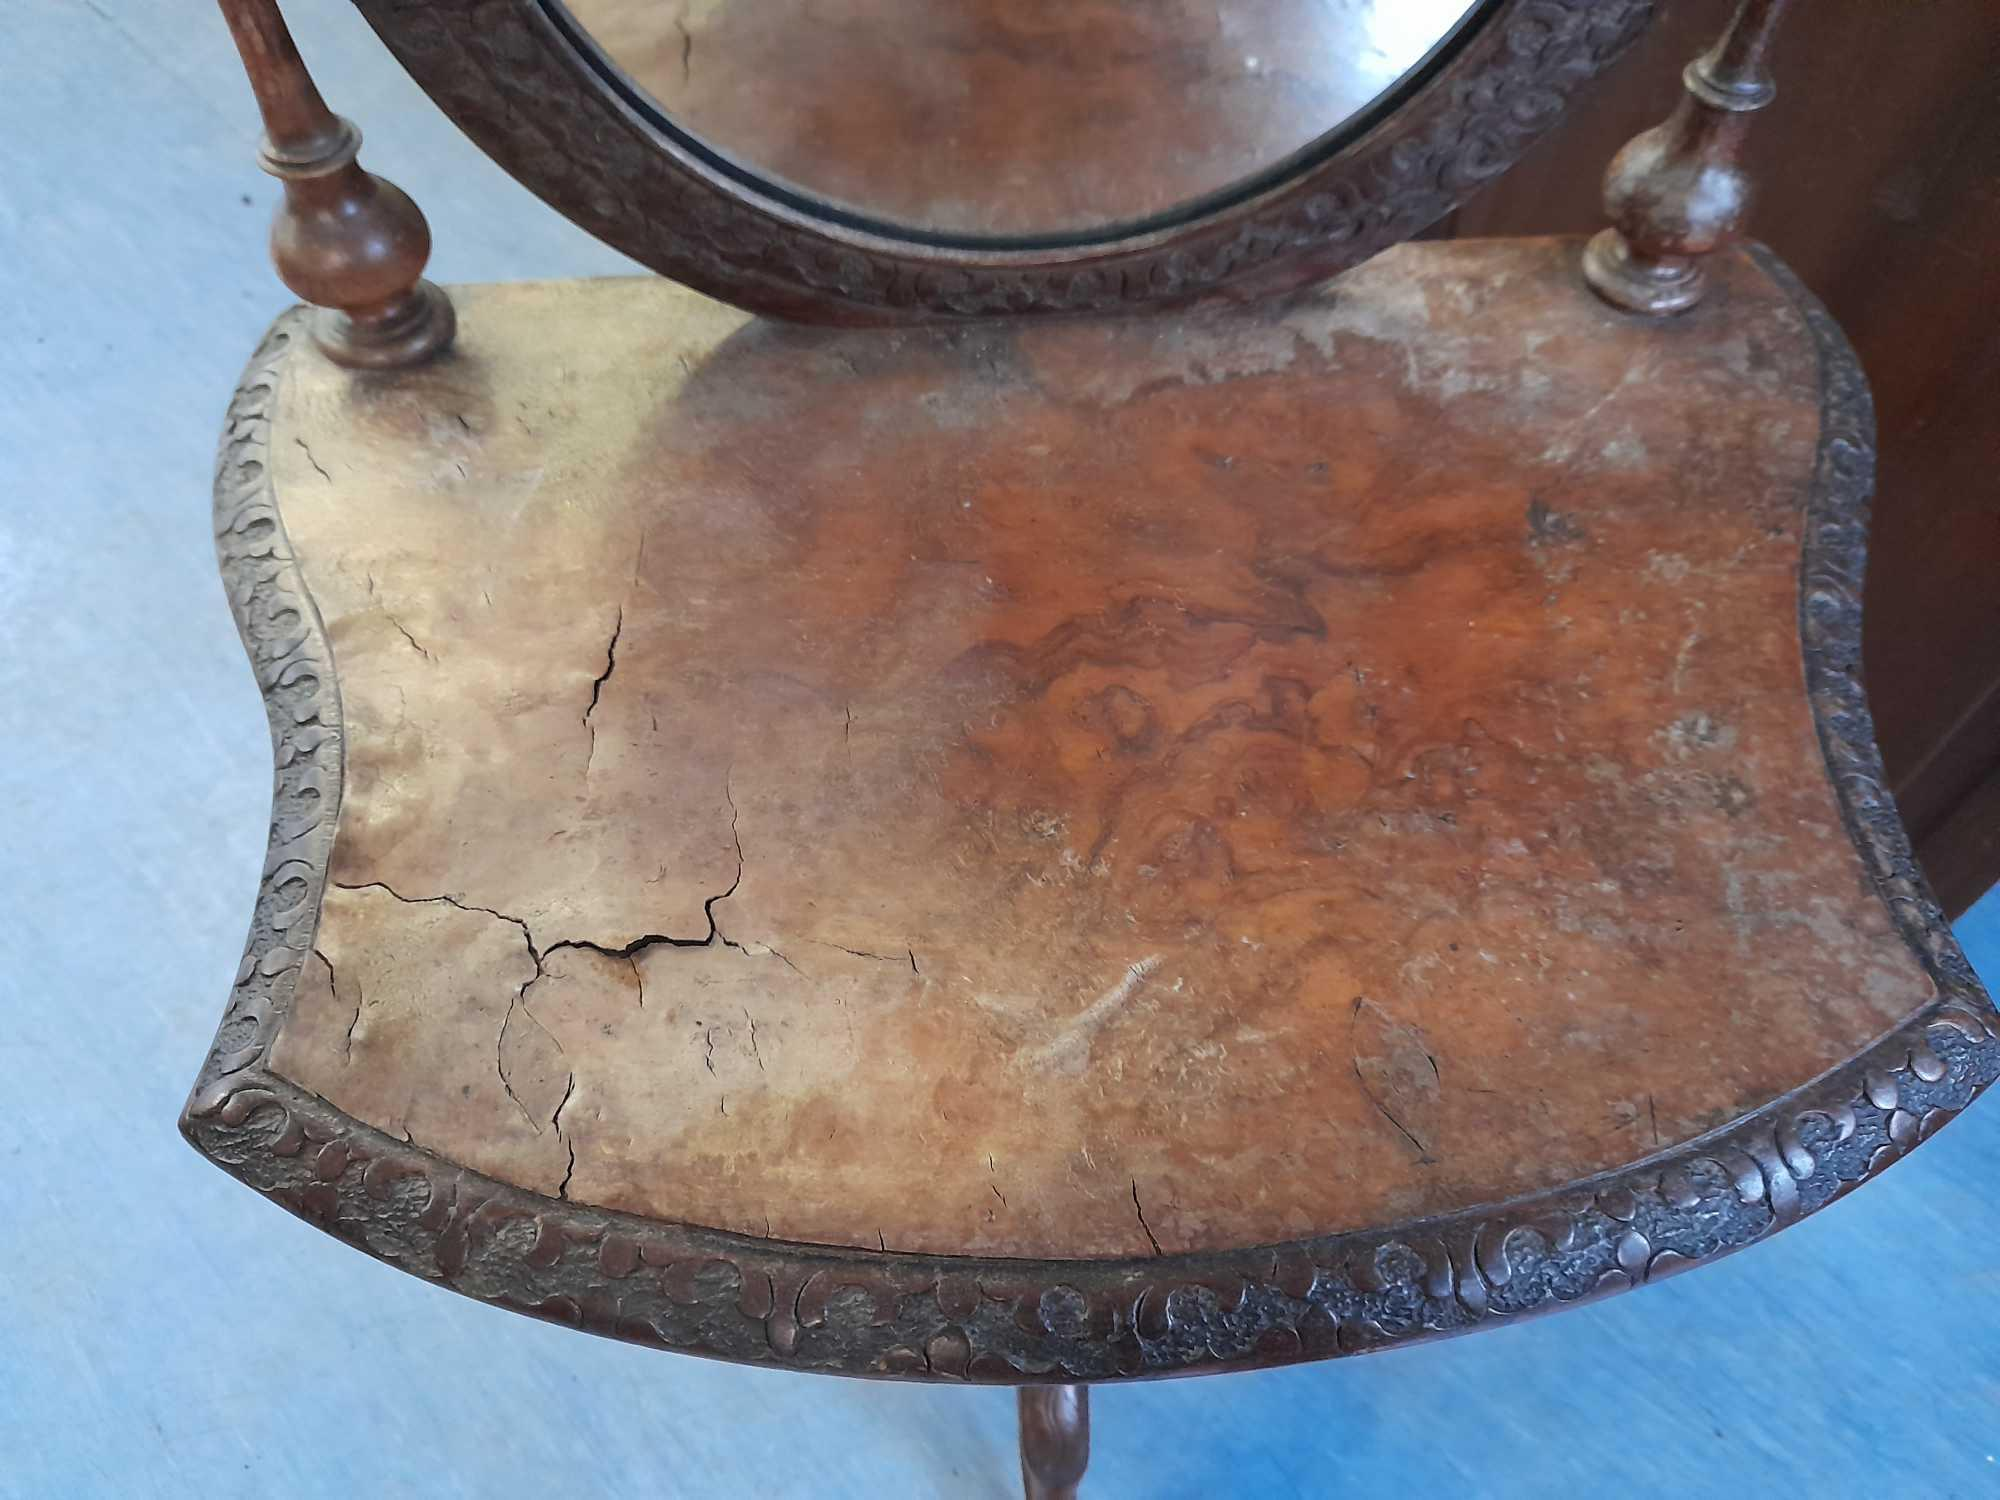 3 LEGGED MIRRORED TABLE (AF) - Image 2 of 4